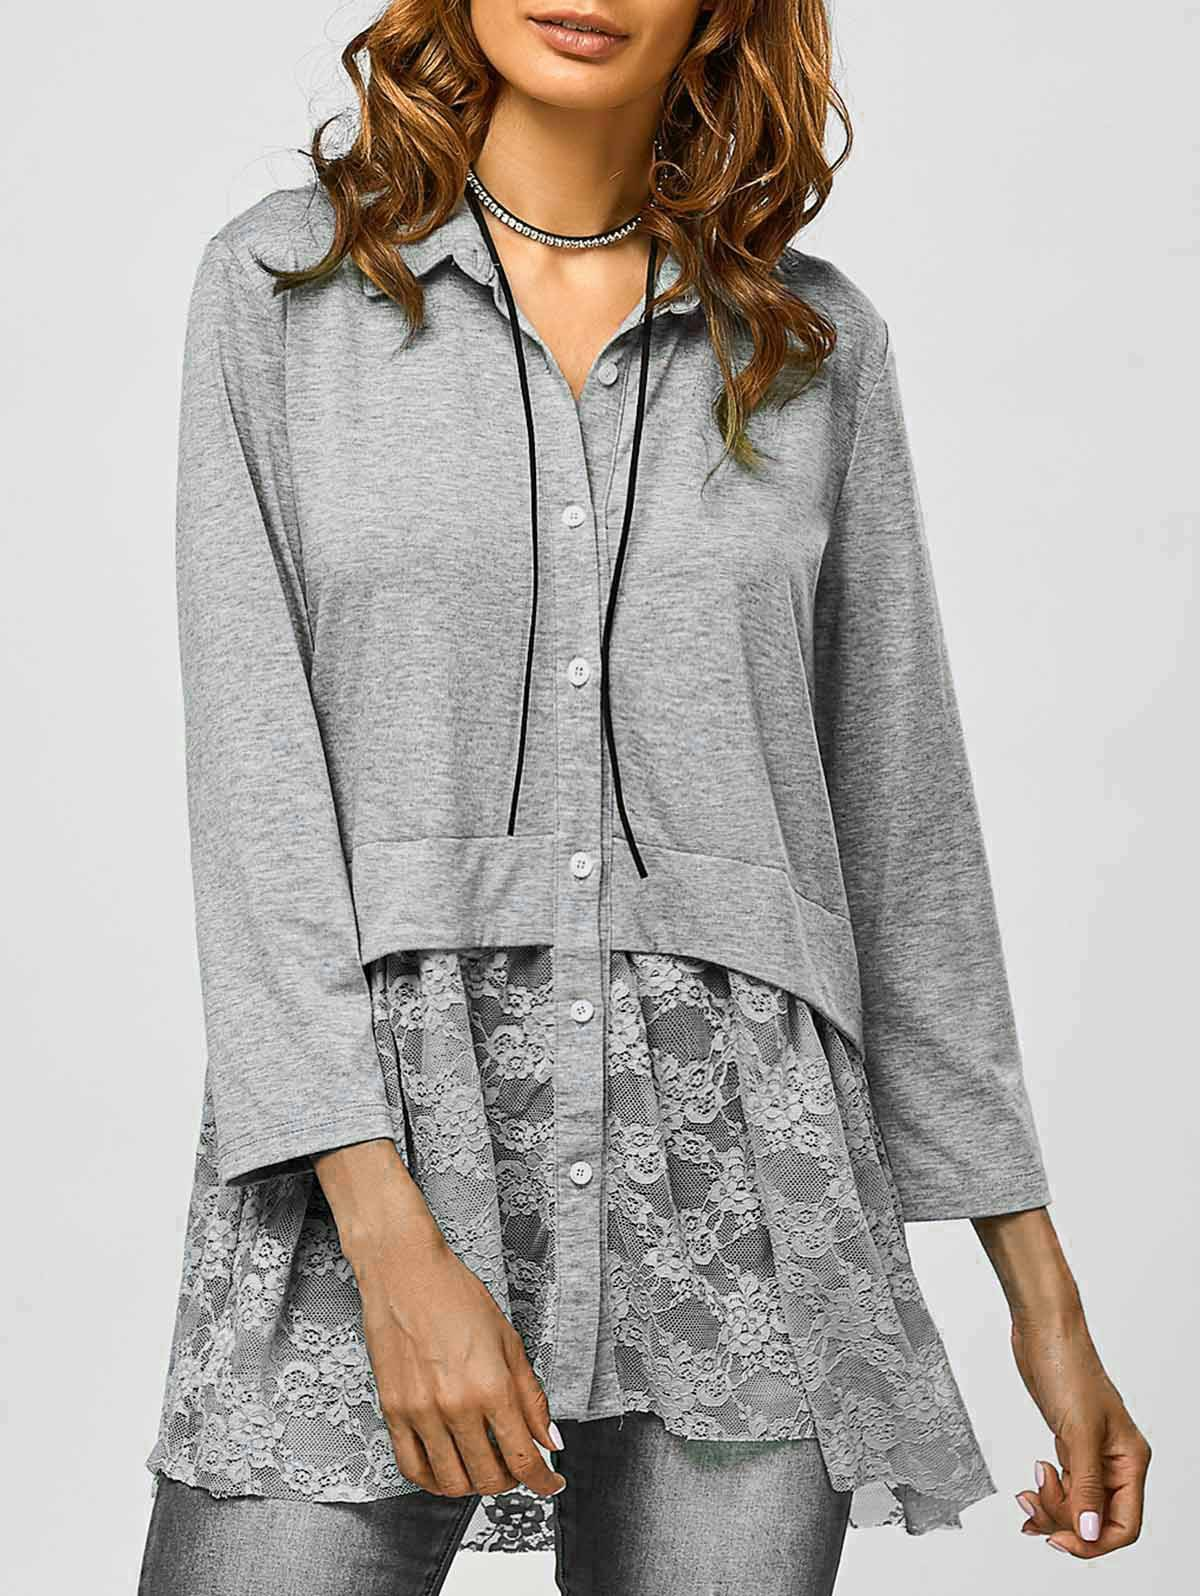 Lace Hem Design Smock Blouse in Gray | Sammydress.com